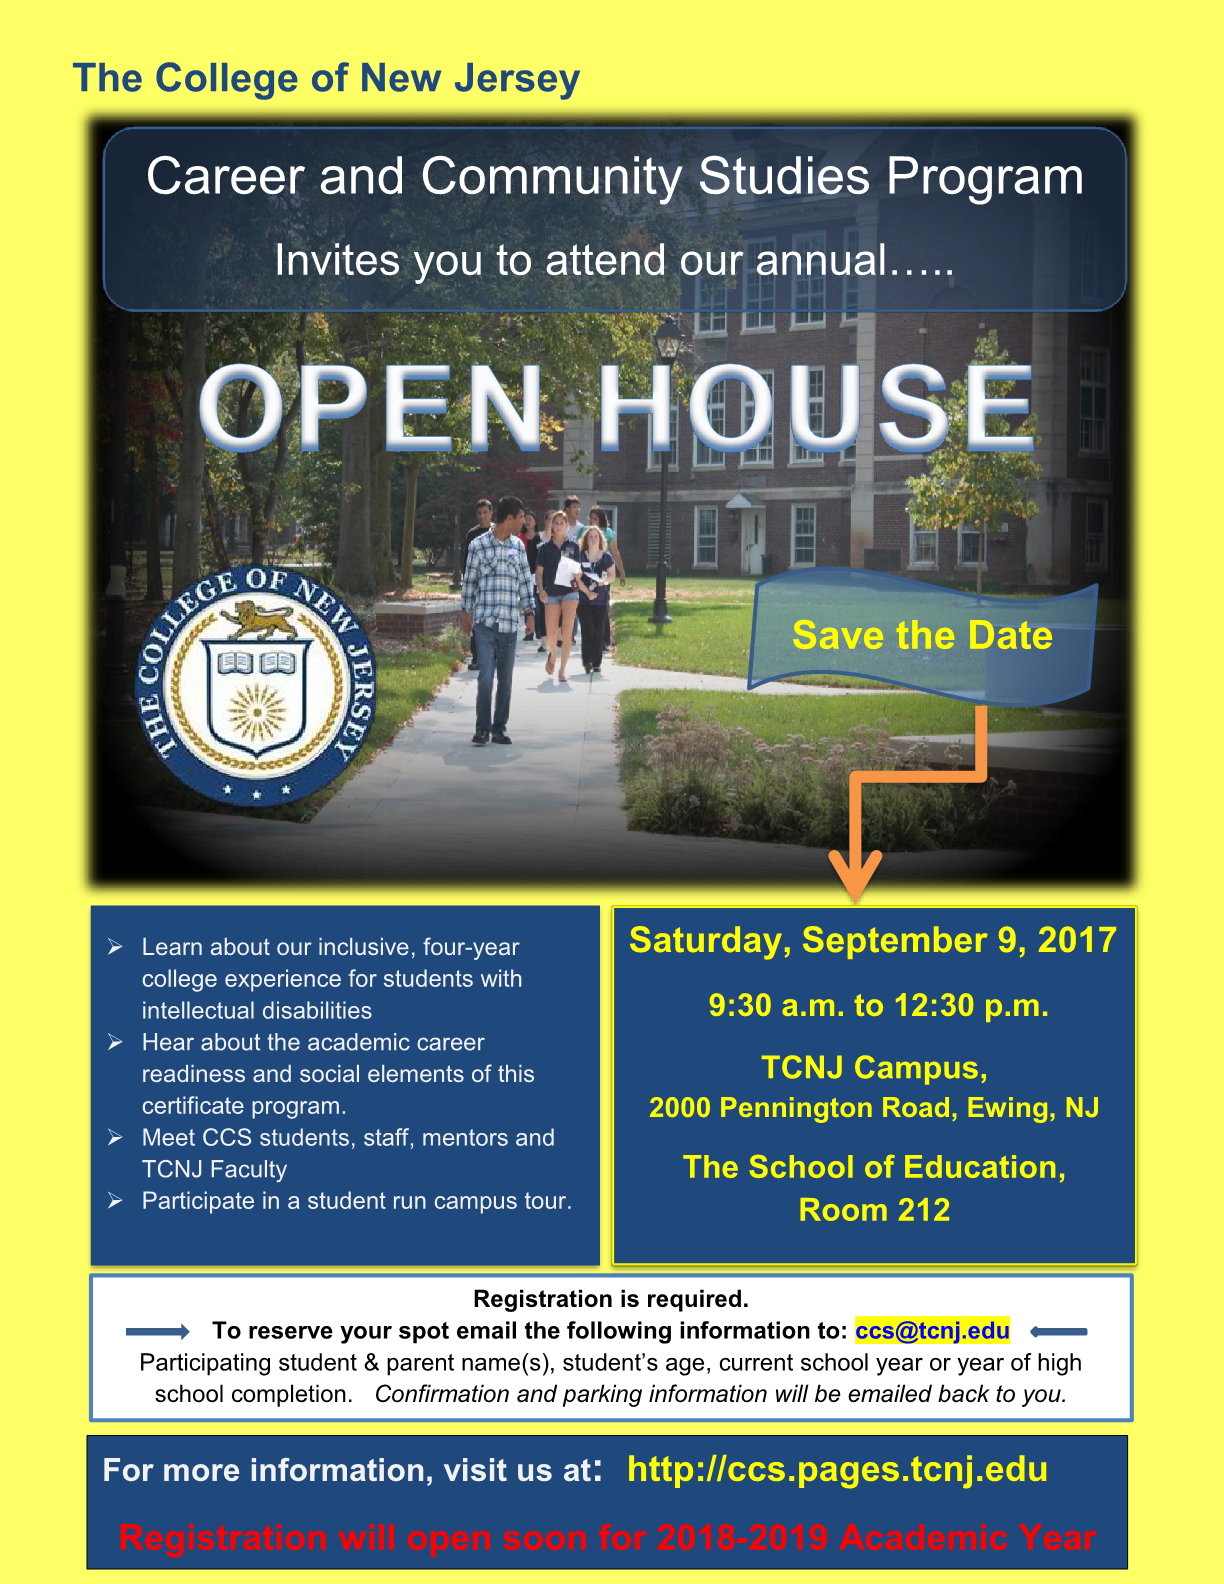 The College of New Jersey Career and Community Studies Program Open House